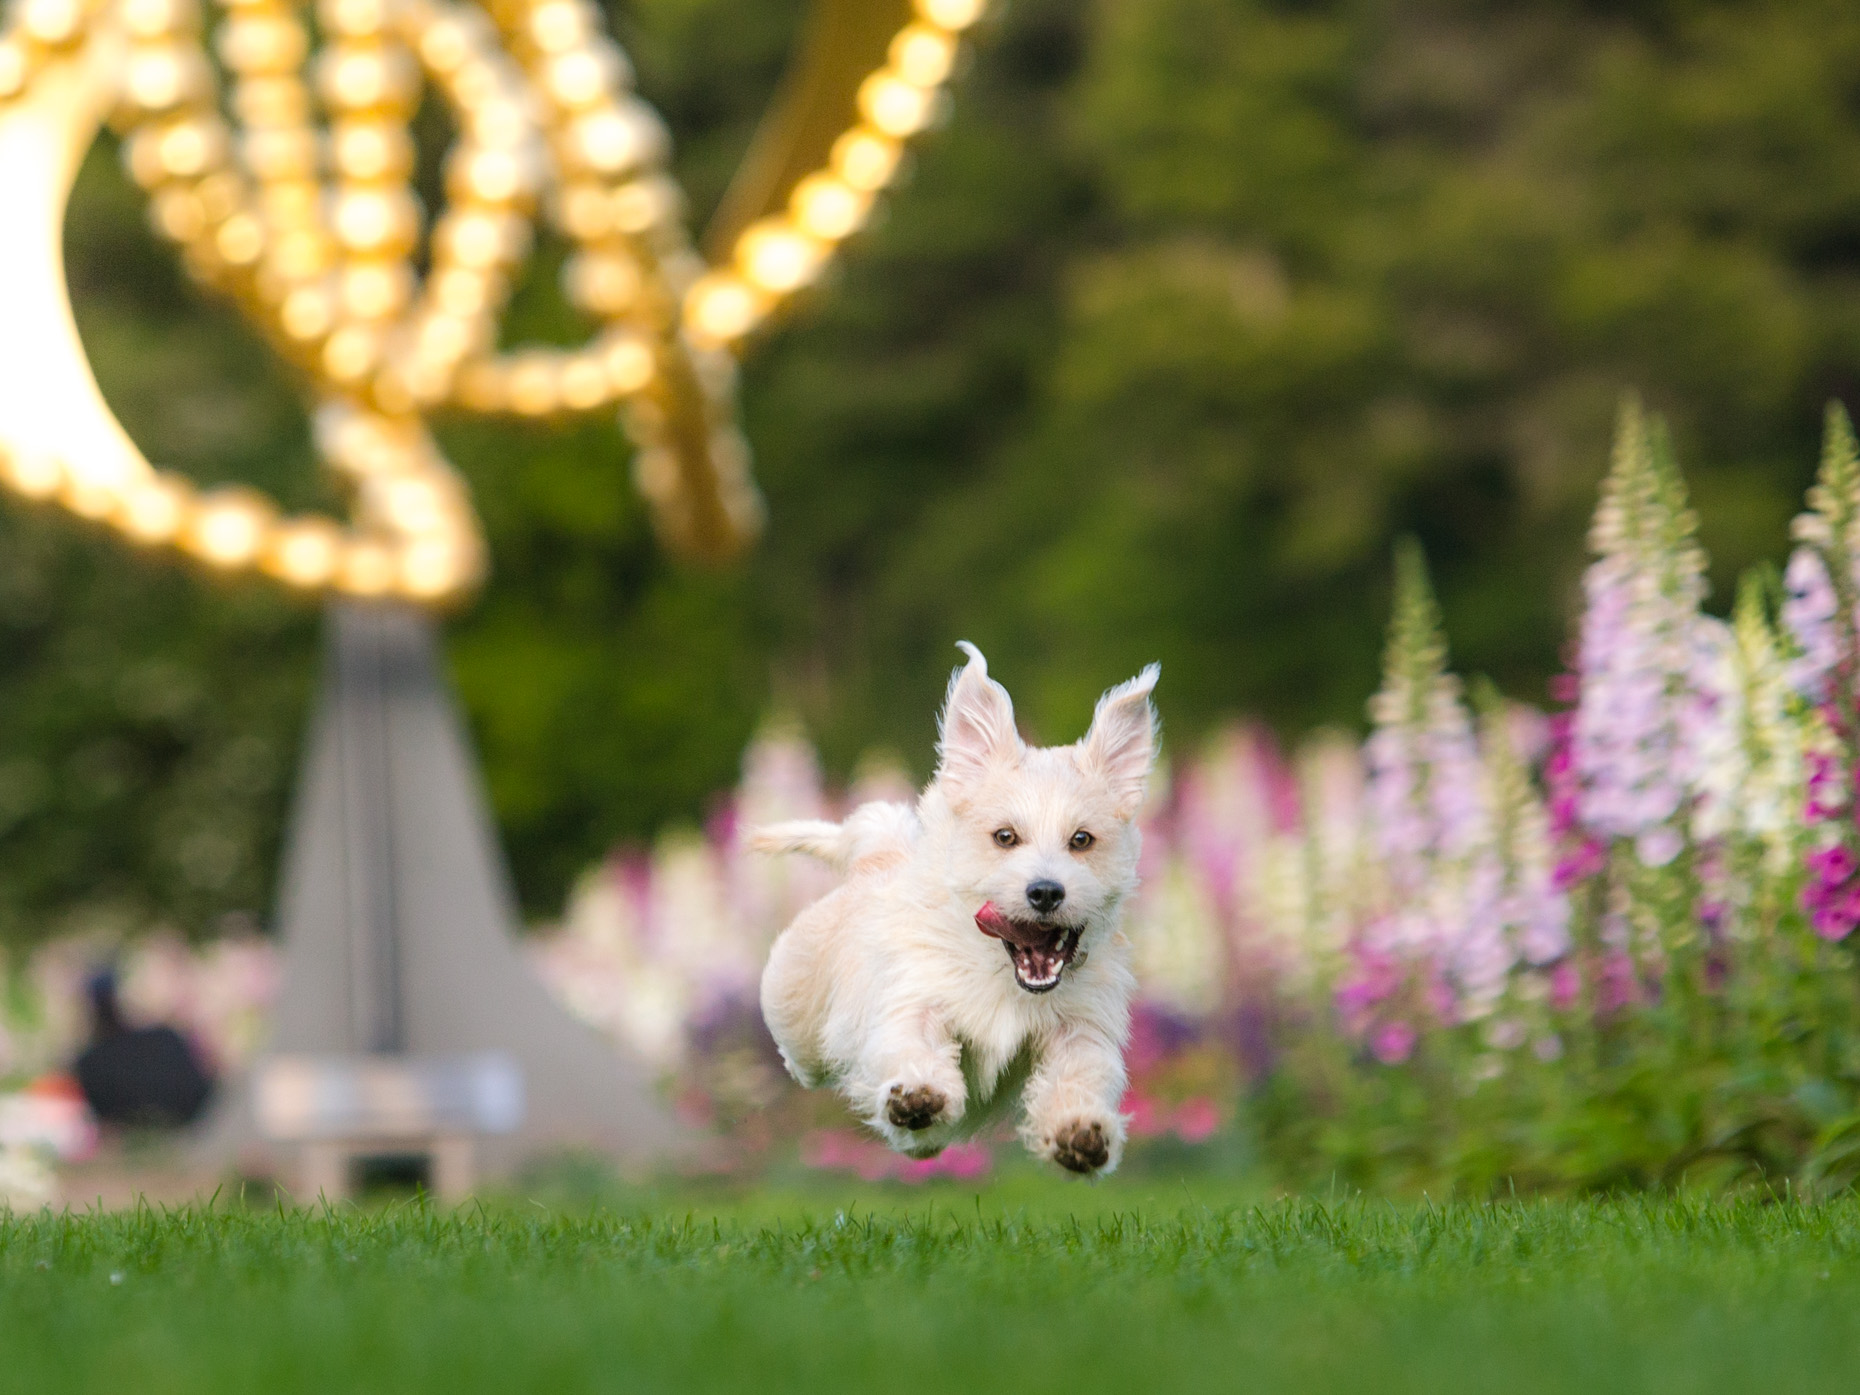 Dog Photography | White Terrier Flying Through Air by Mark Rogers